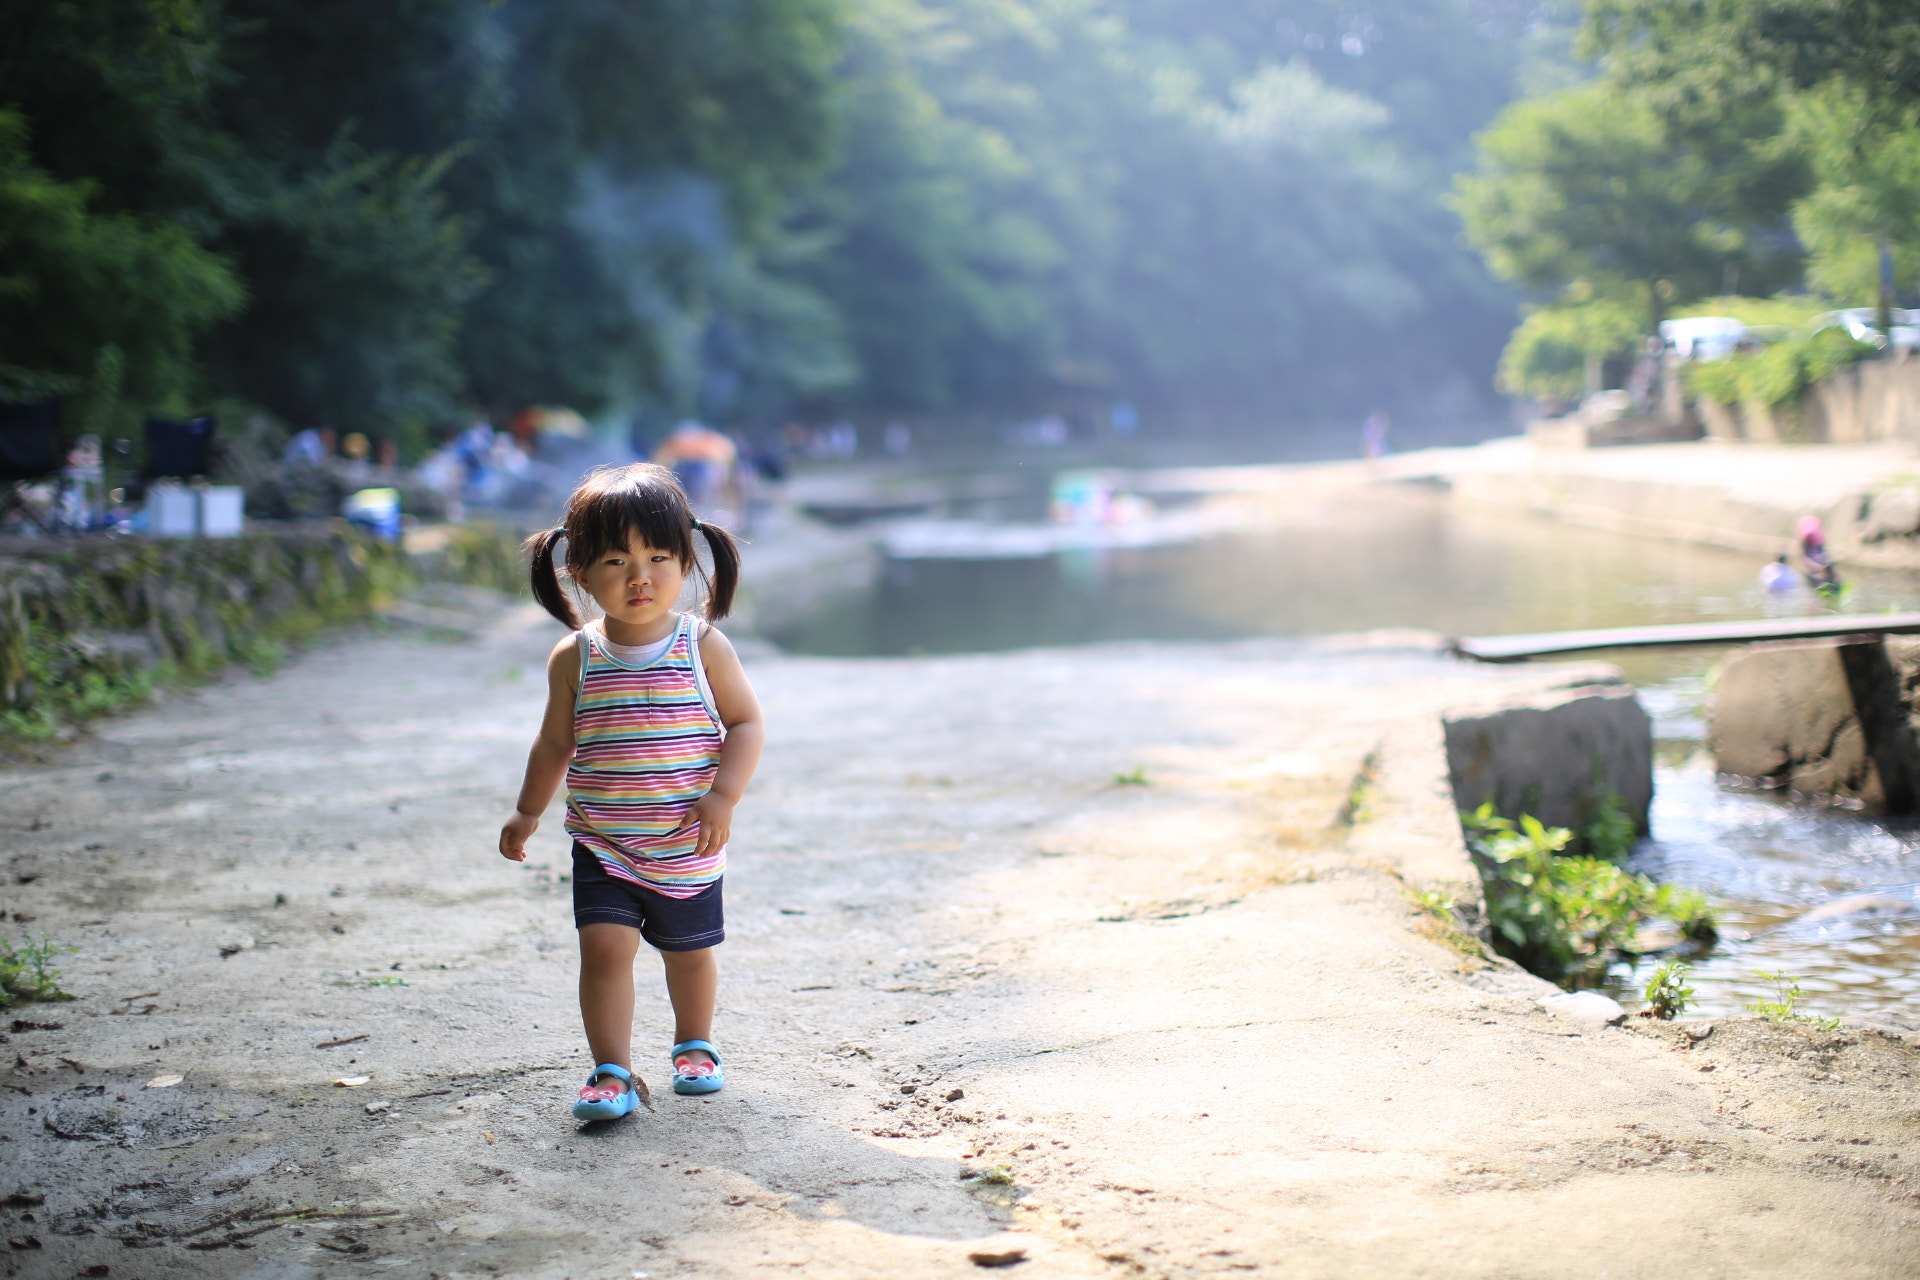 Photograph The girl in the valley by Dongwon Suh on 500px